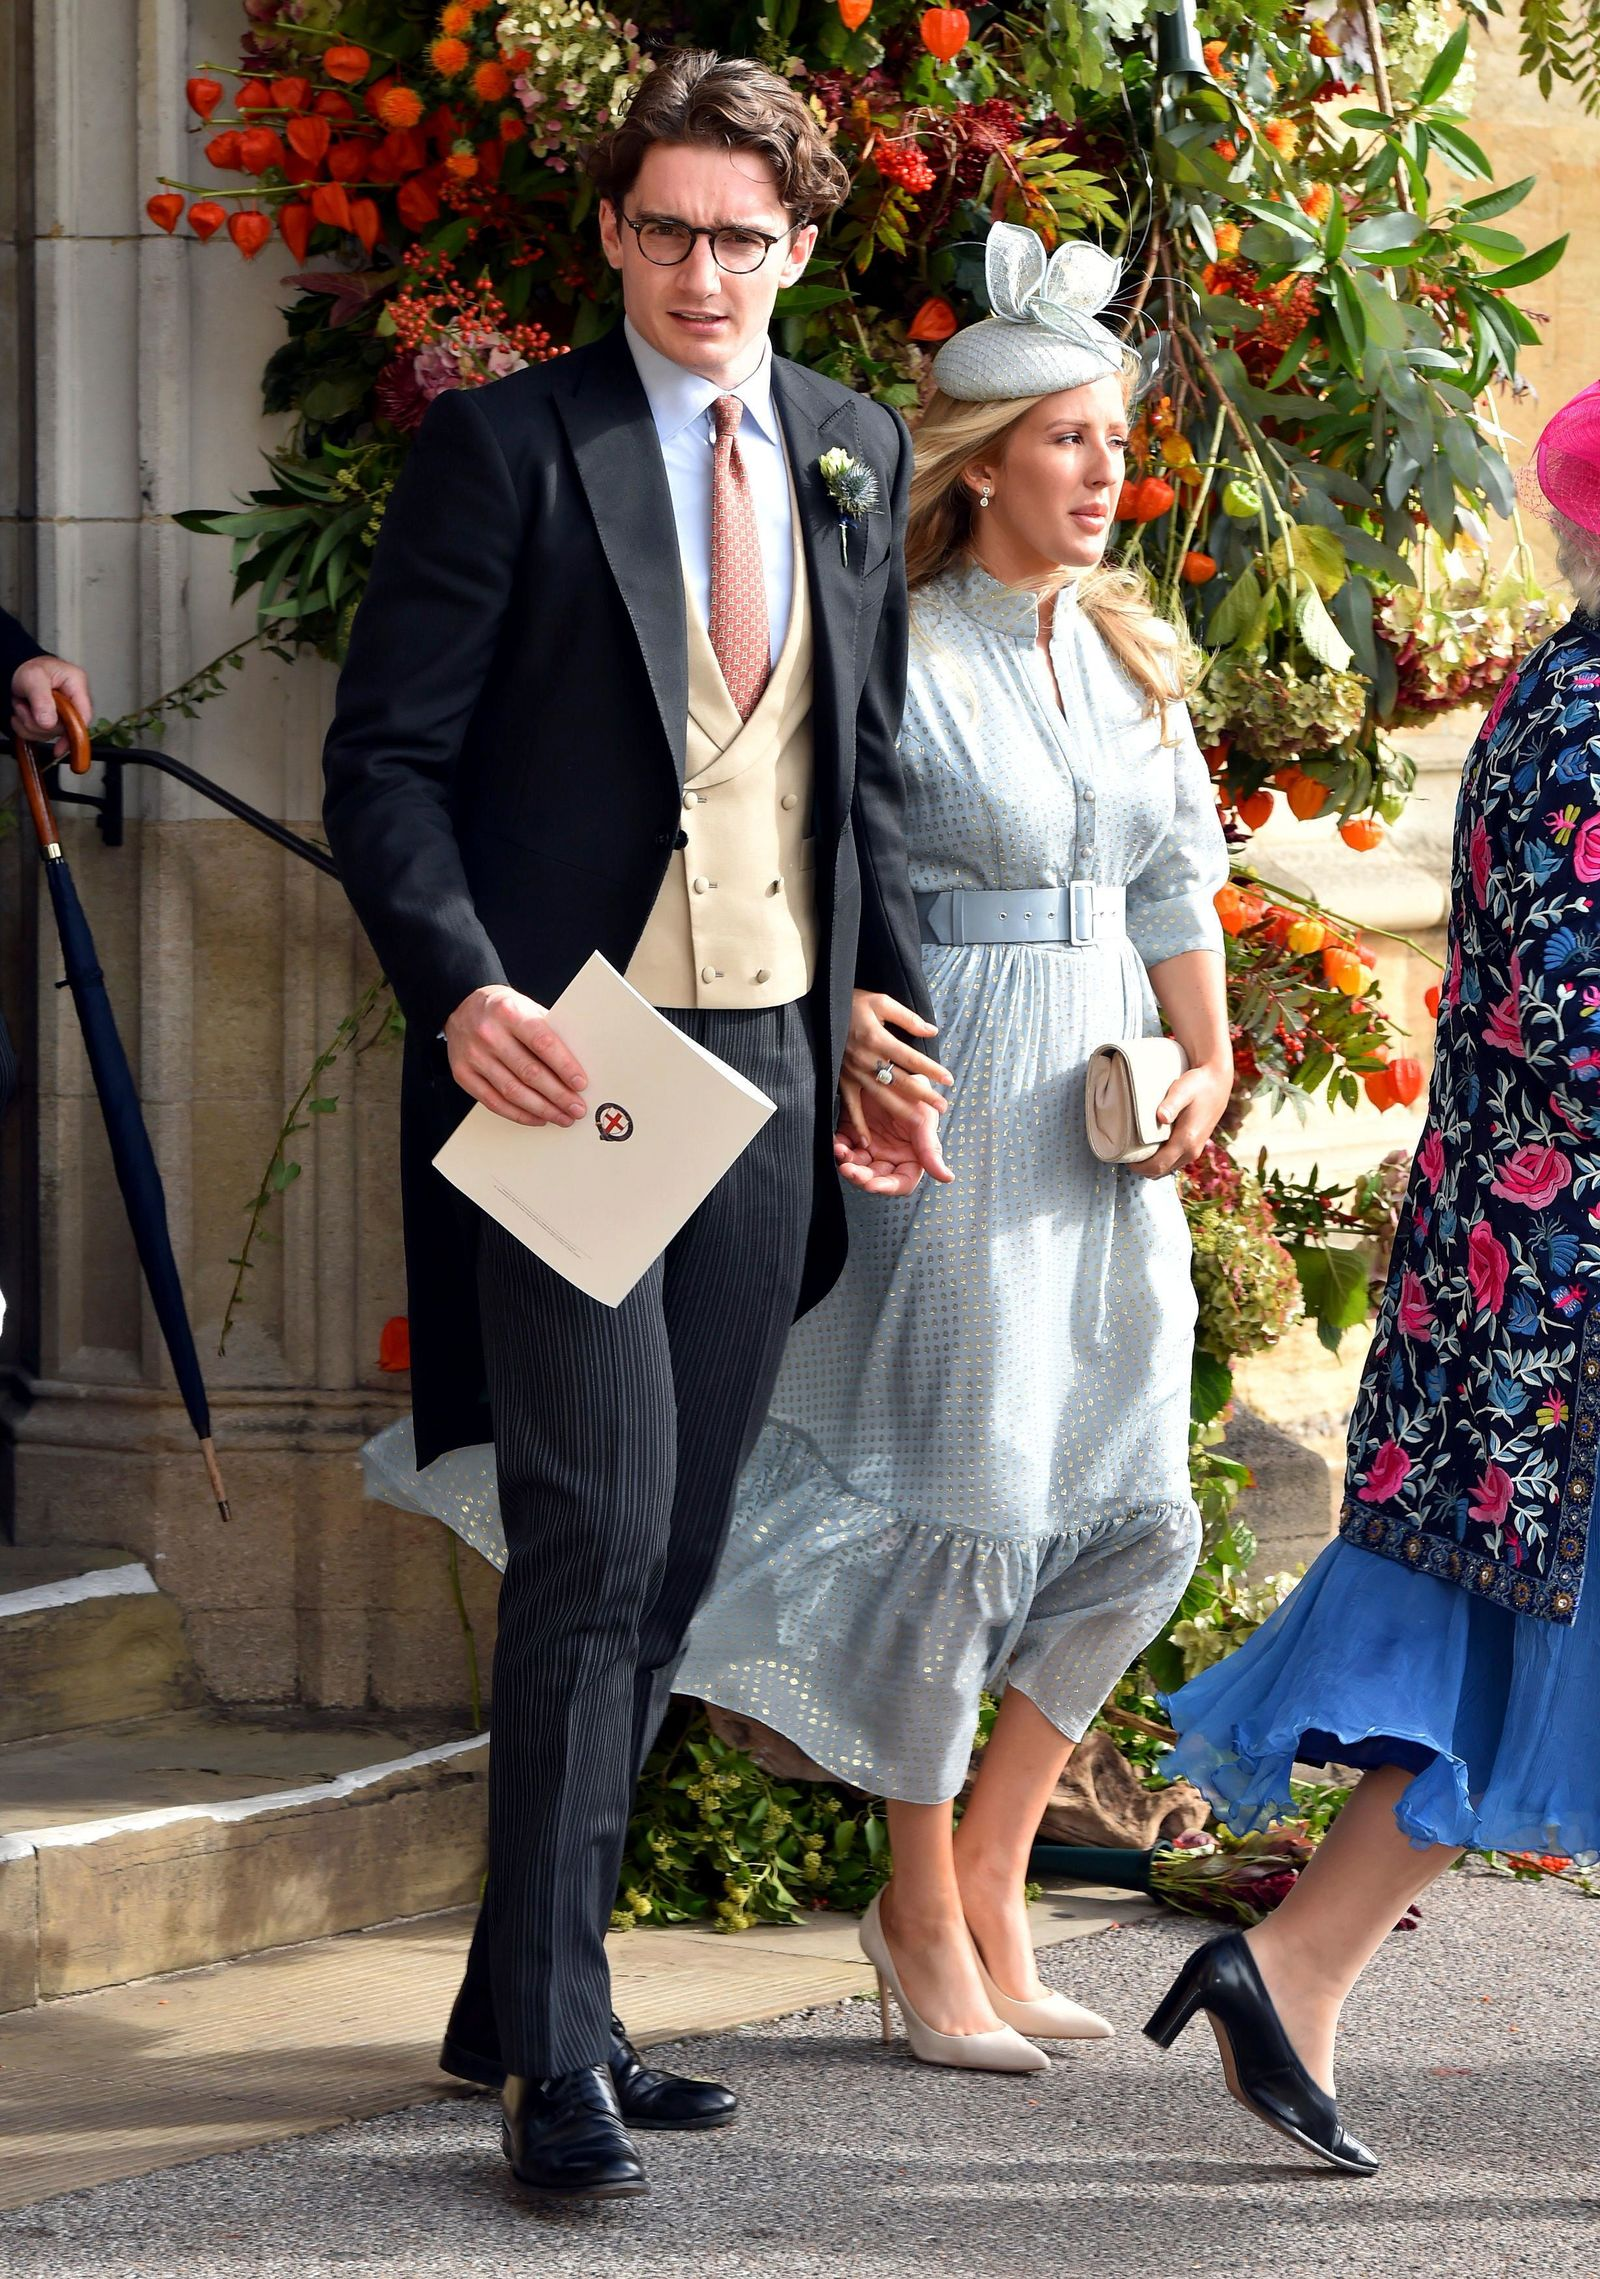 FILE - In this Oct. 12, 2018 file photo,  Caspar Joplin, left, and singer Ellie Goulding depart after the wedding of Princess Eugenie of York and Jack Brooksbank at St George's Chapel, Windsor Castle, near London, England. (Matt Crossick, Pool via AP, File)